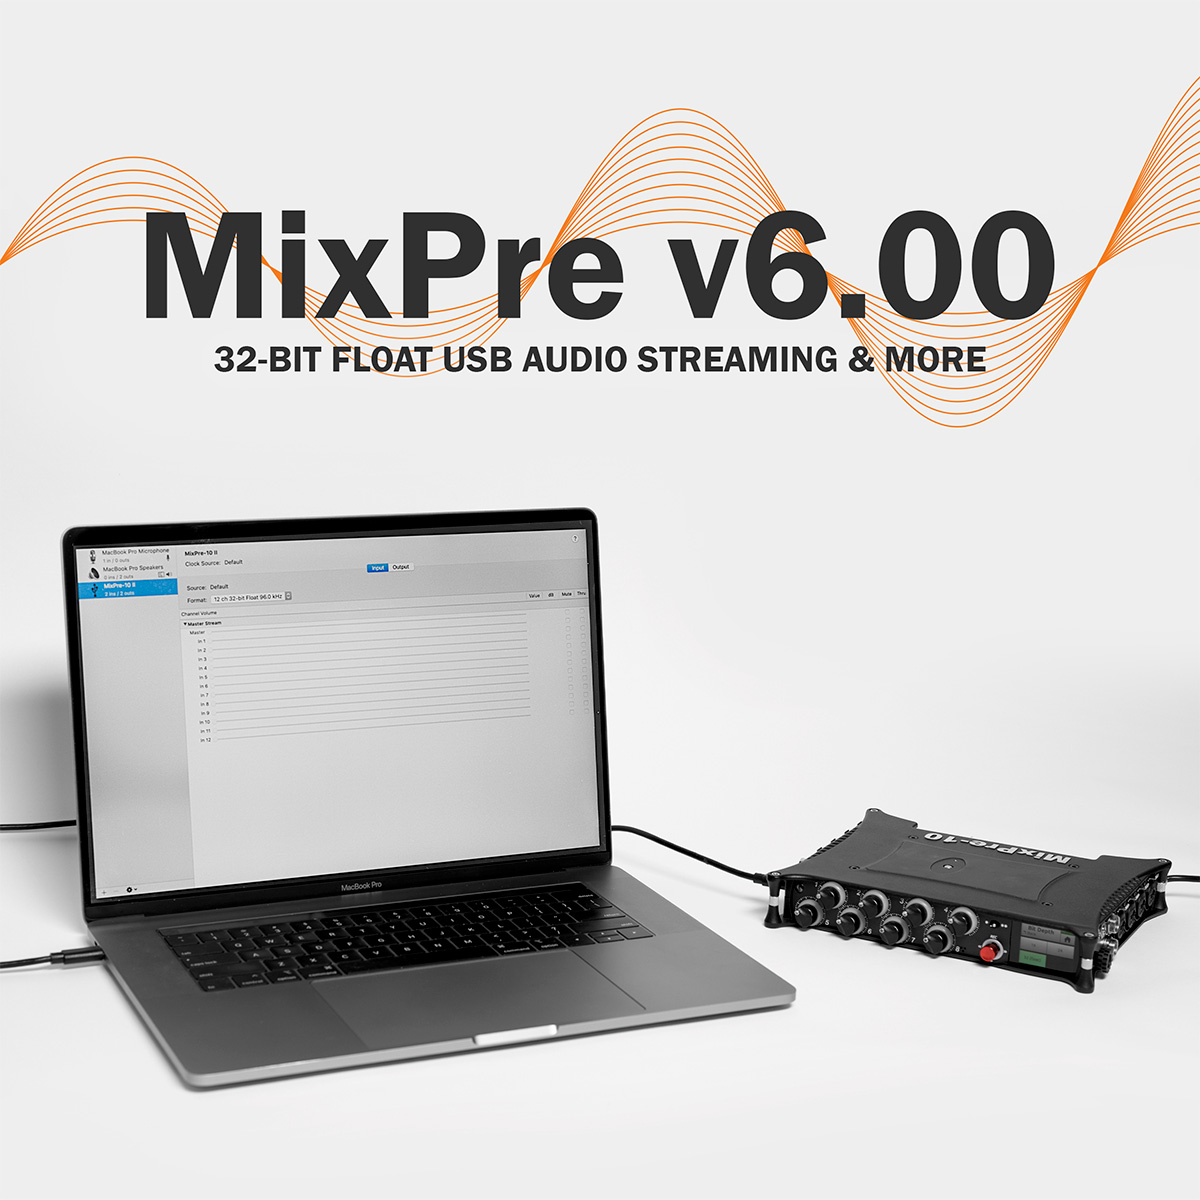 MixPre 6.00 Sound Devices